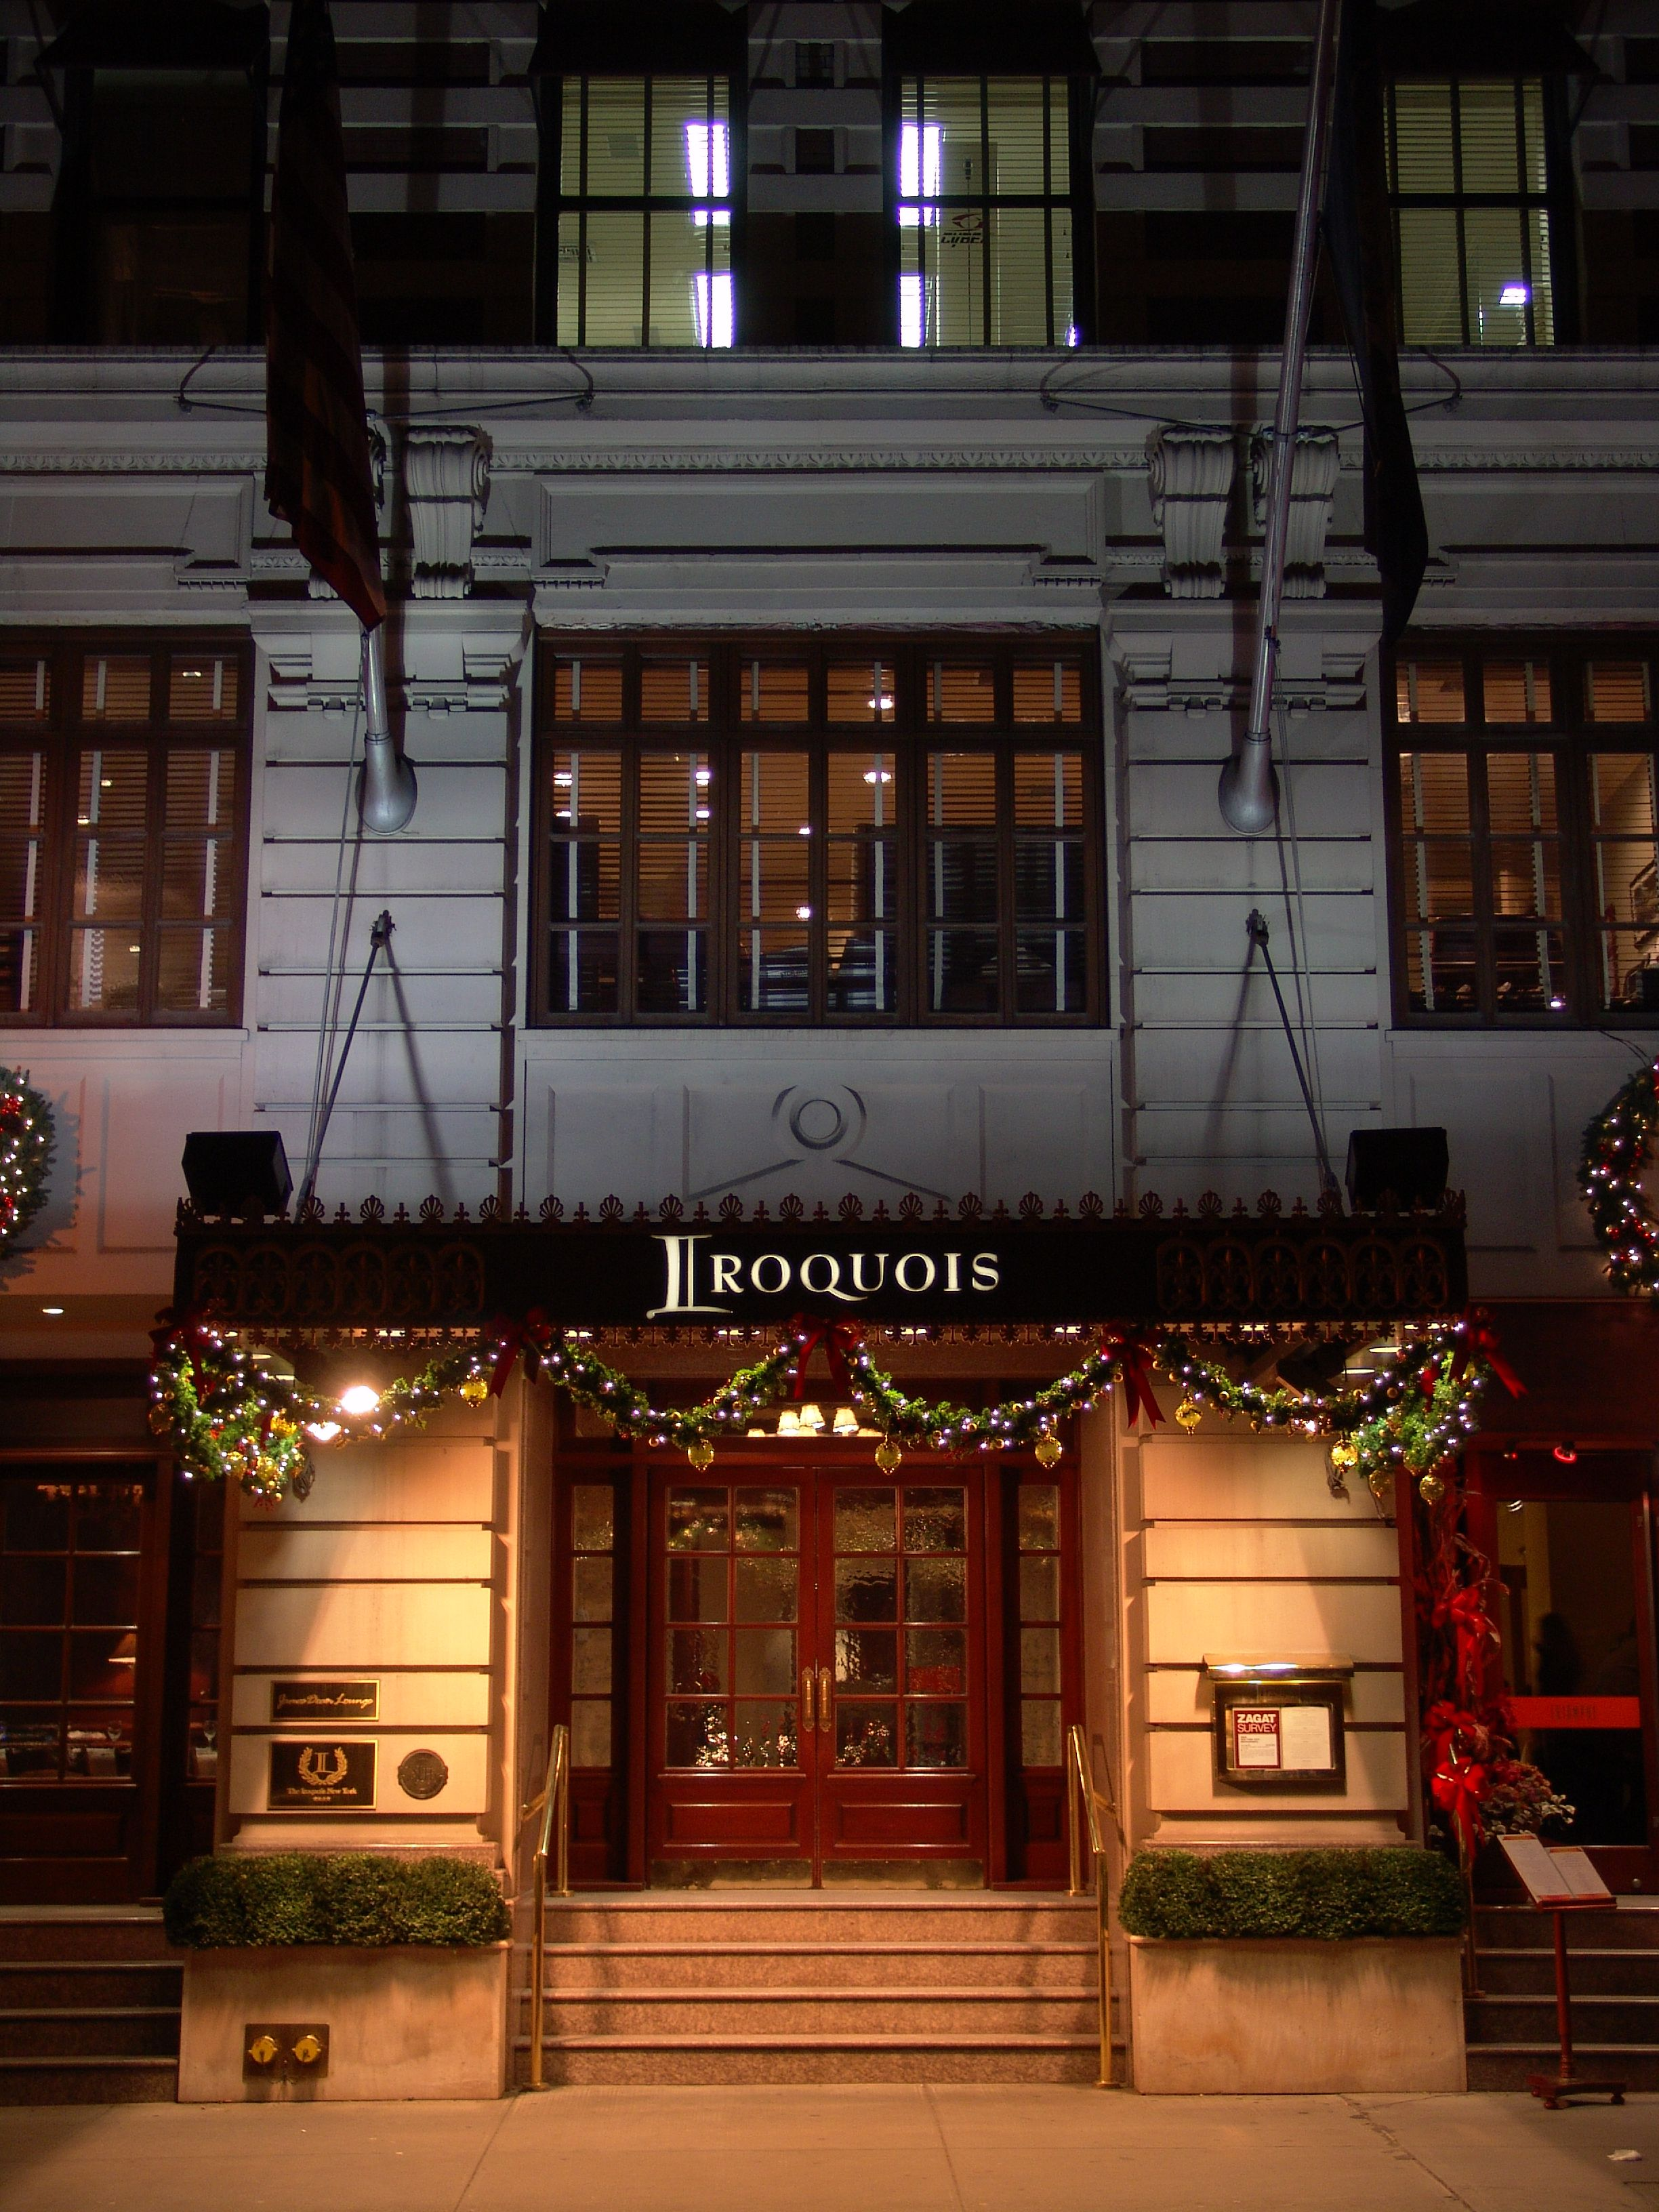 The Iroquois New York Installs Signeture Tv Hd From